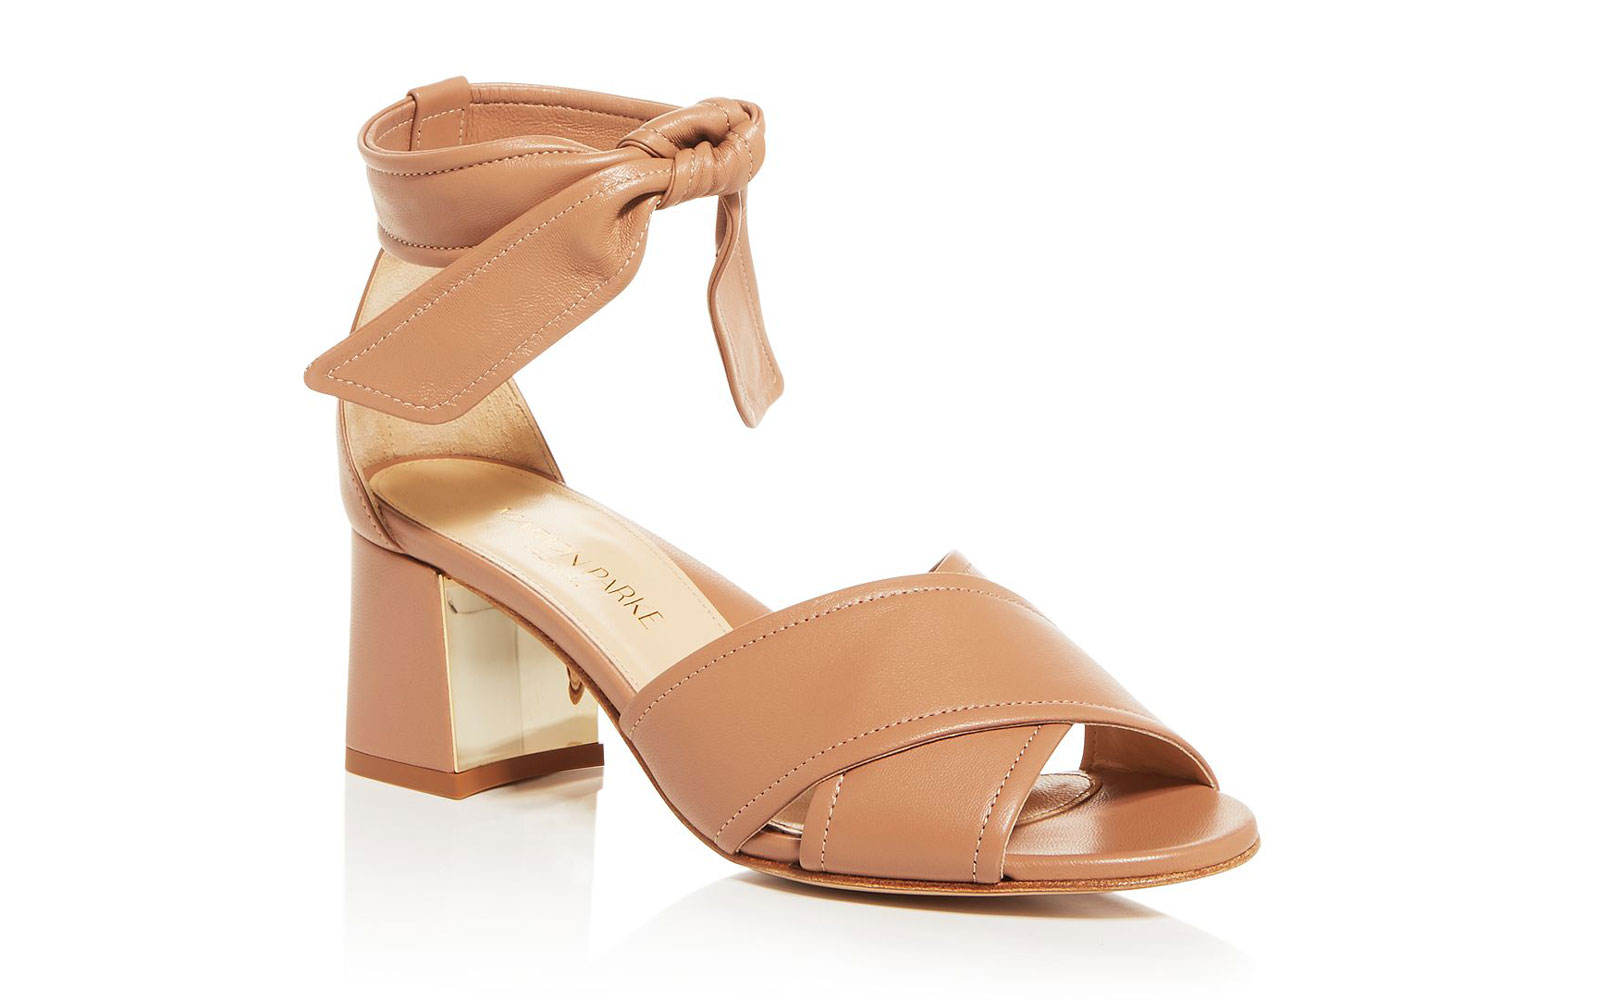 Women's tan leather heeled sandals